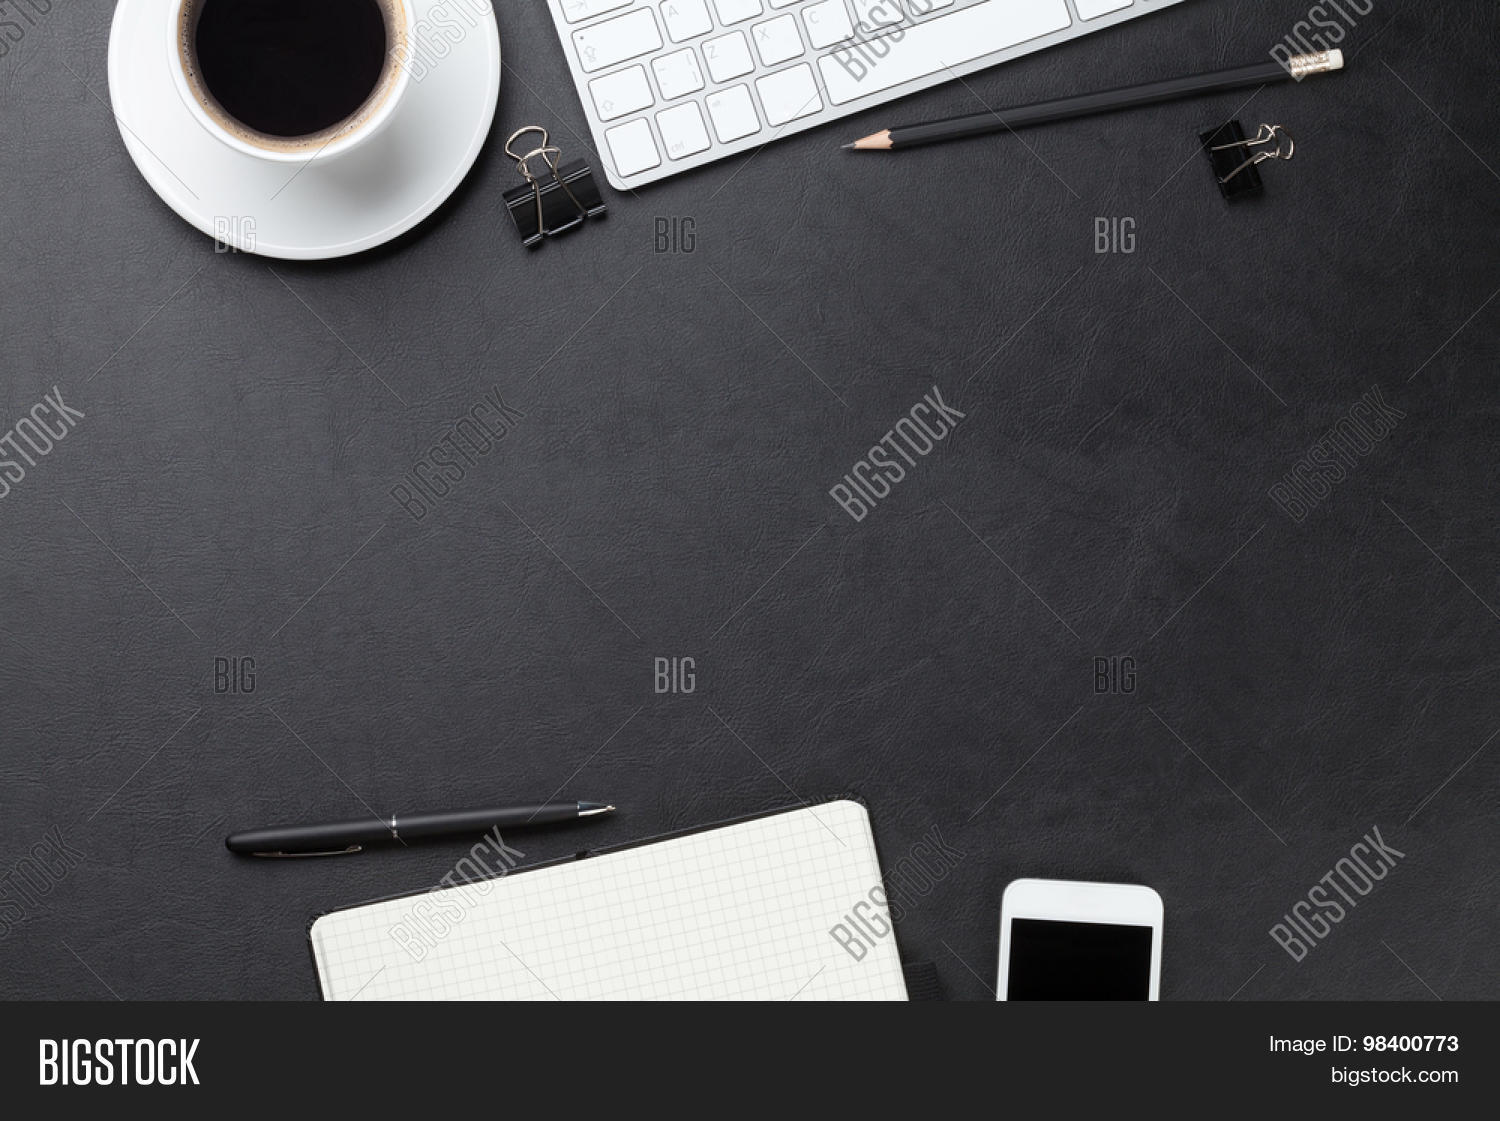 Office Leather Desk Image Photo Free Trial Bigstock